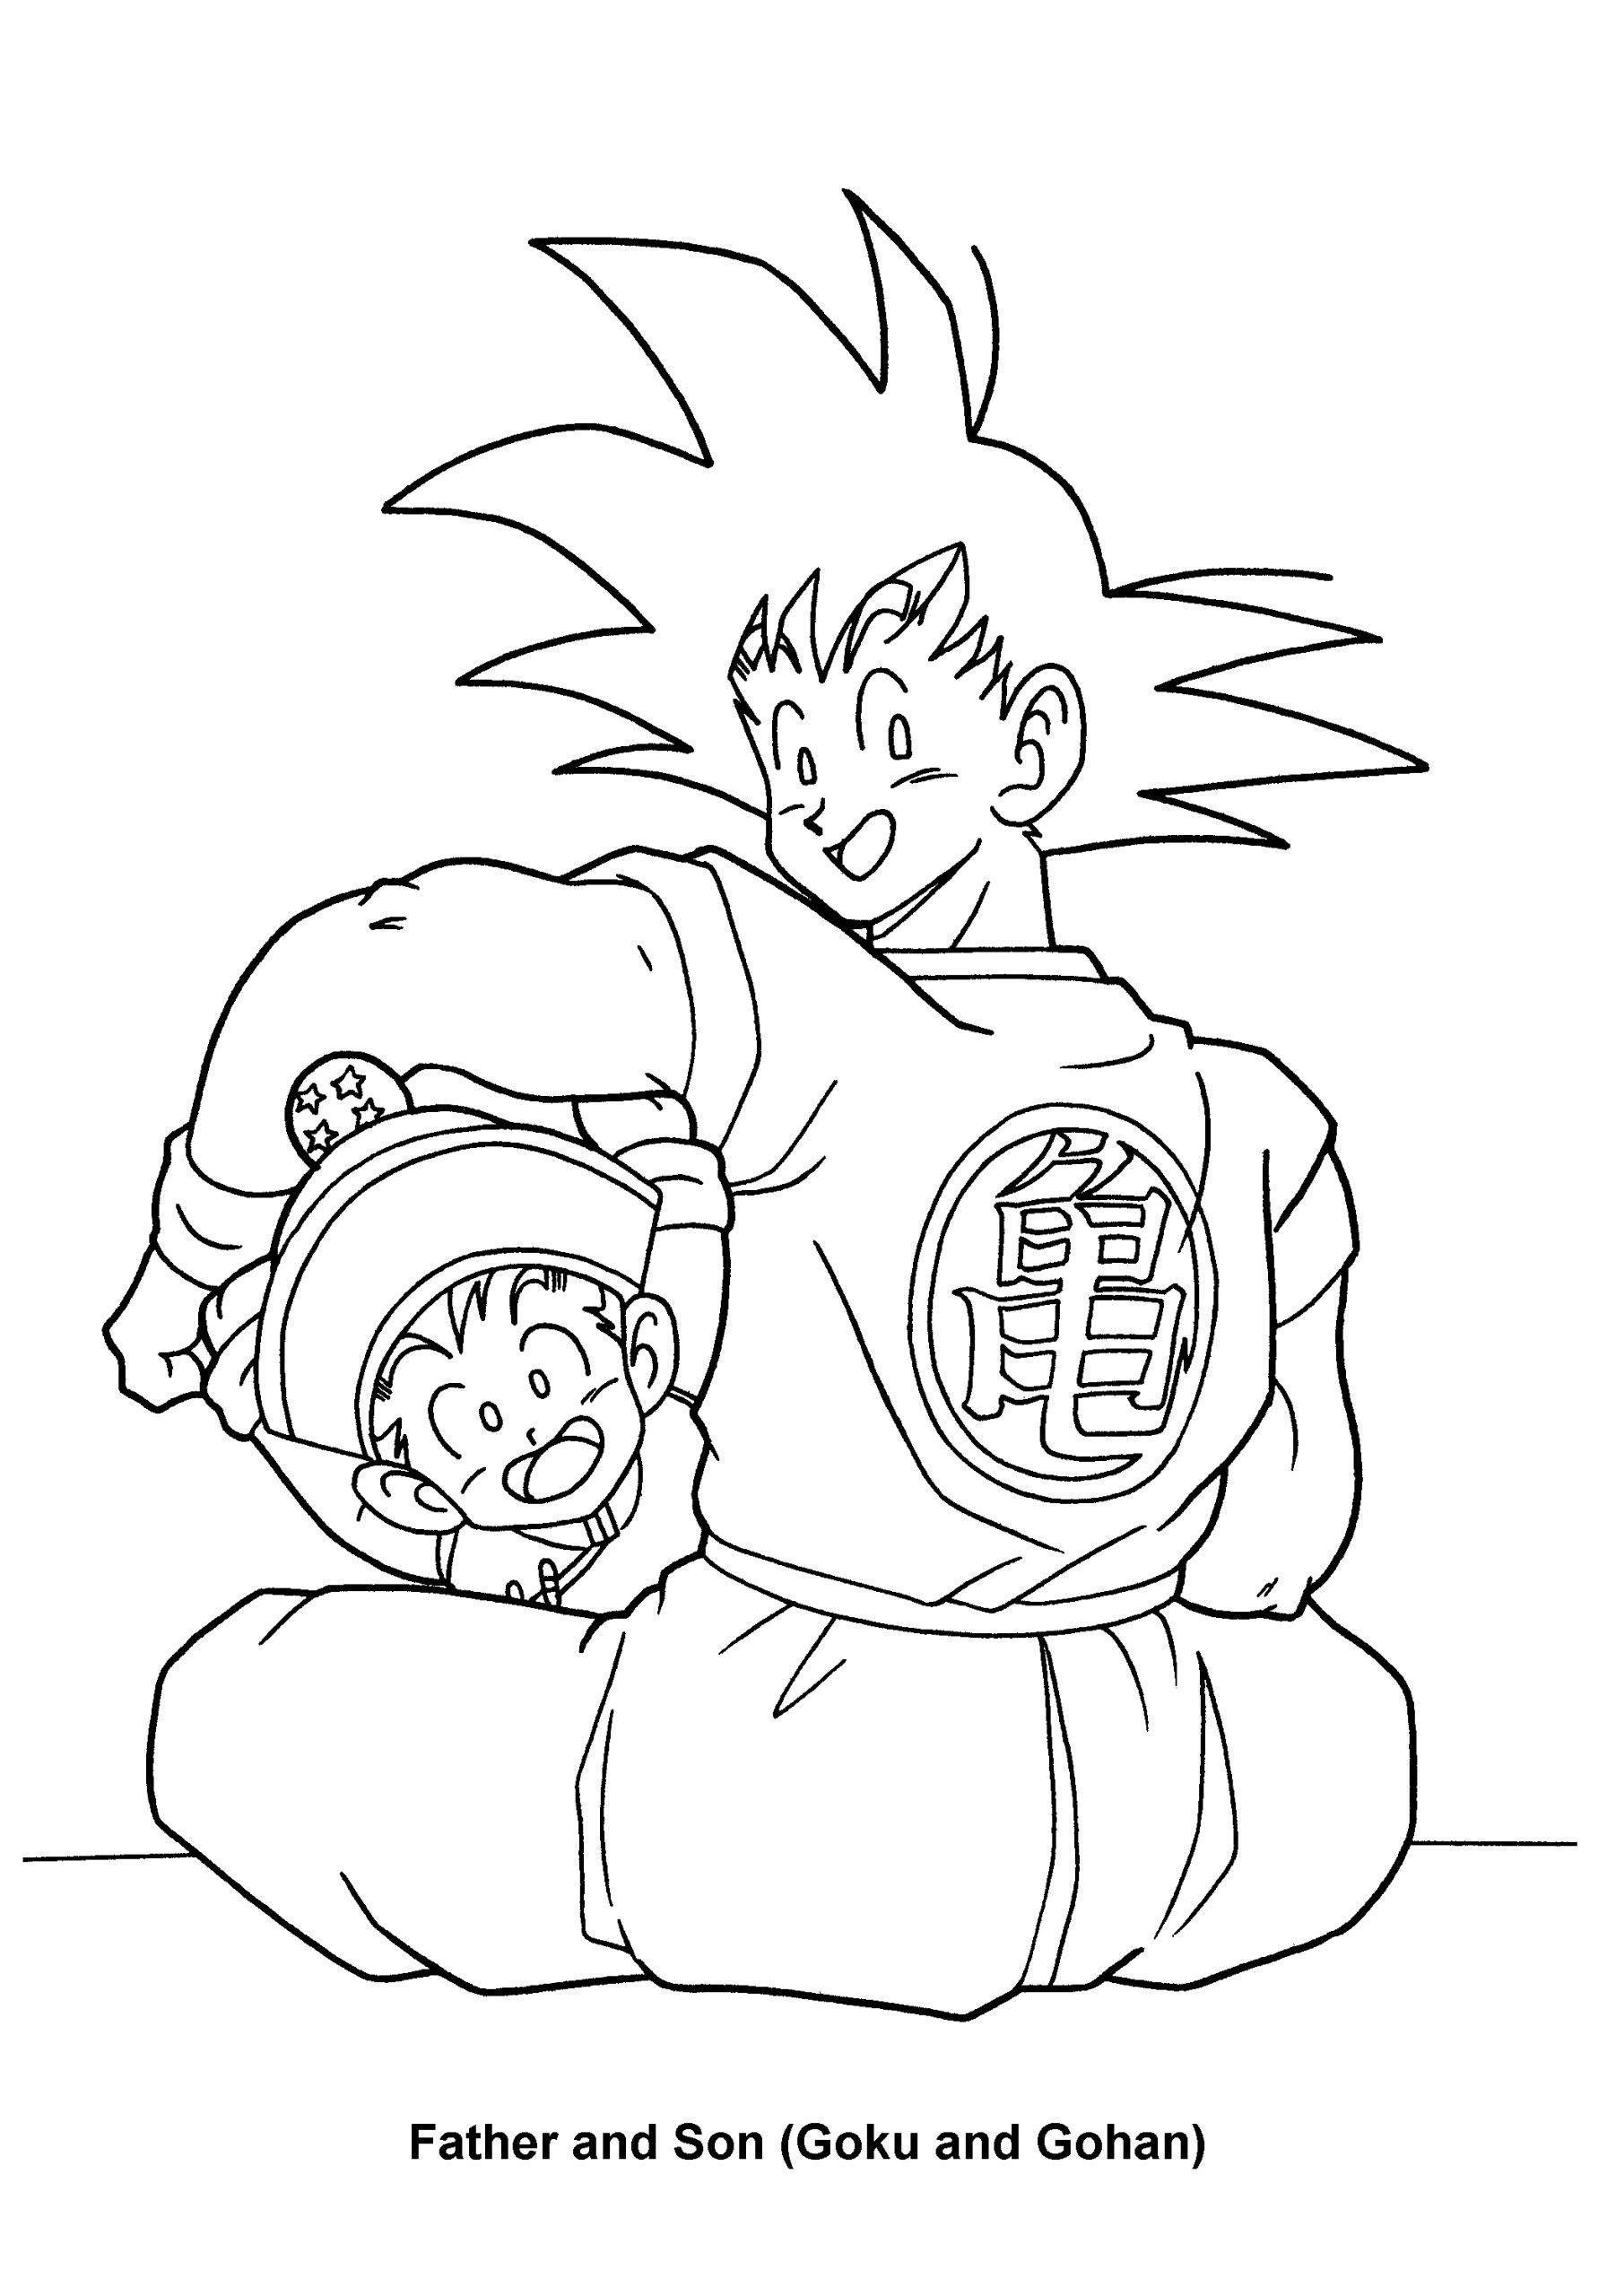 Dragon Ballz Coloring Page Youngandtae Com Dragon Coloring Page Dragon Ball Artwork Cartoon Coloring Pages